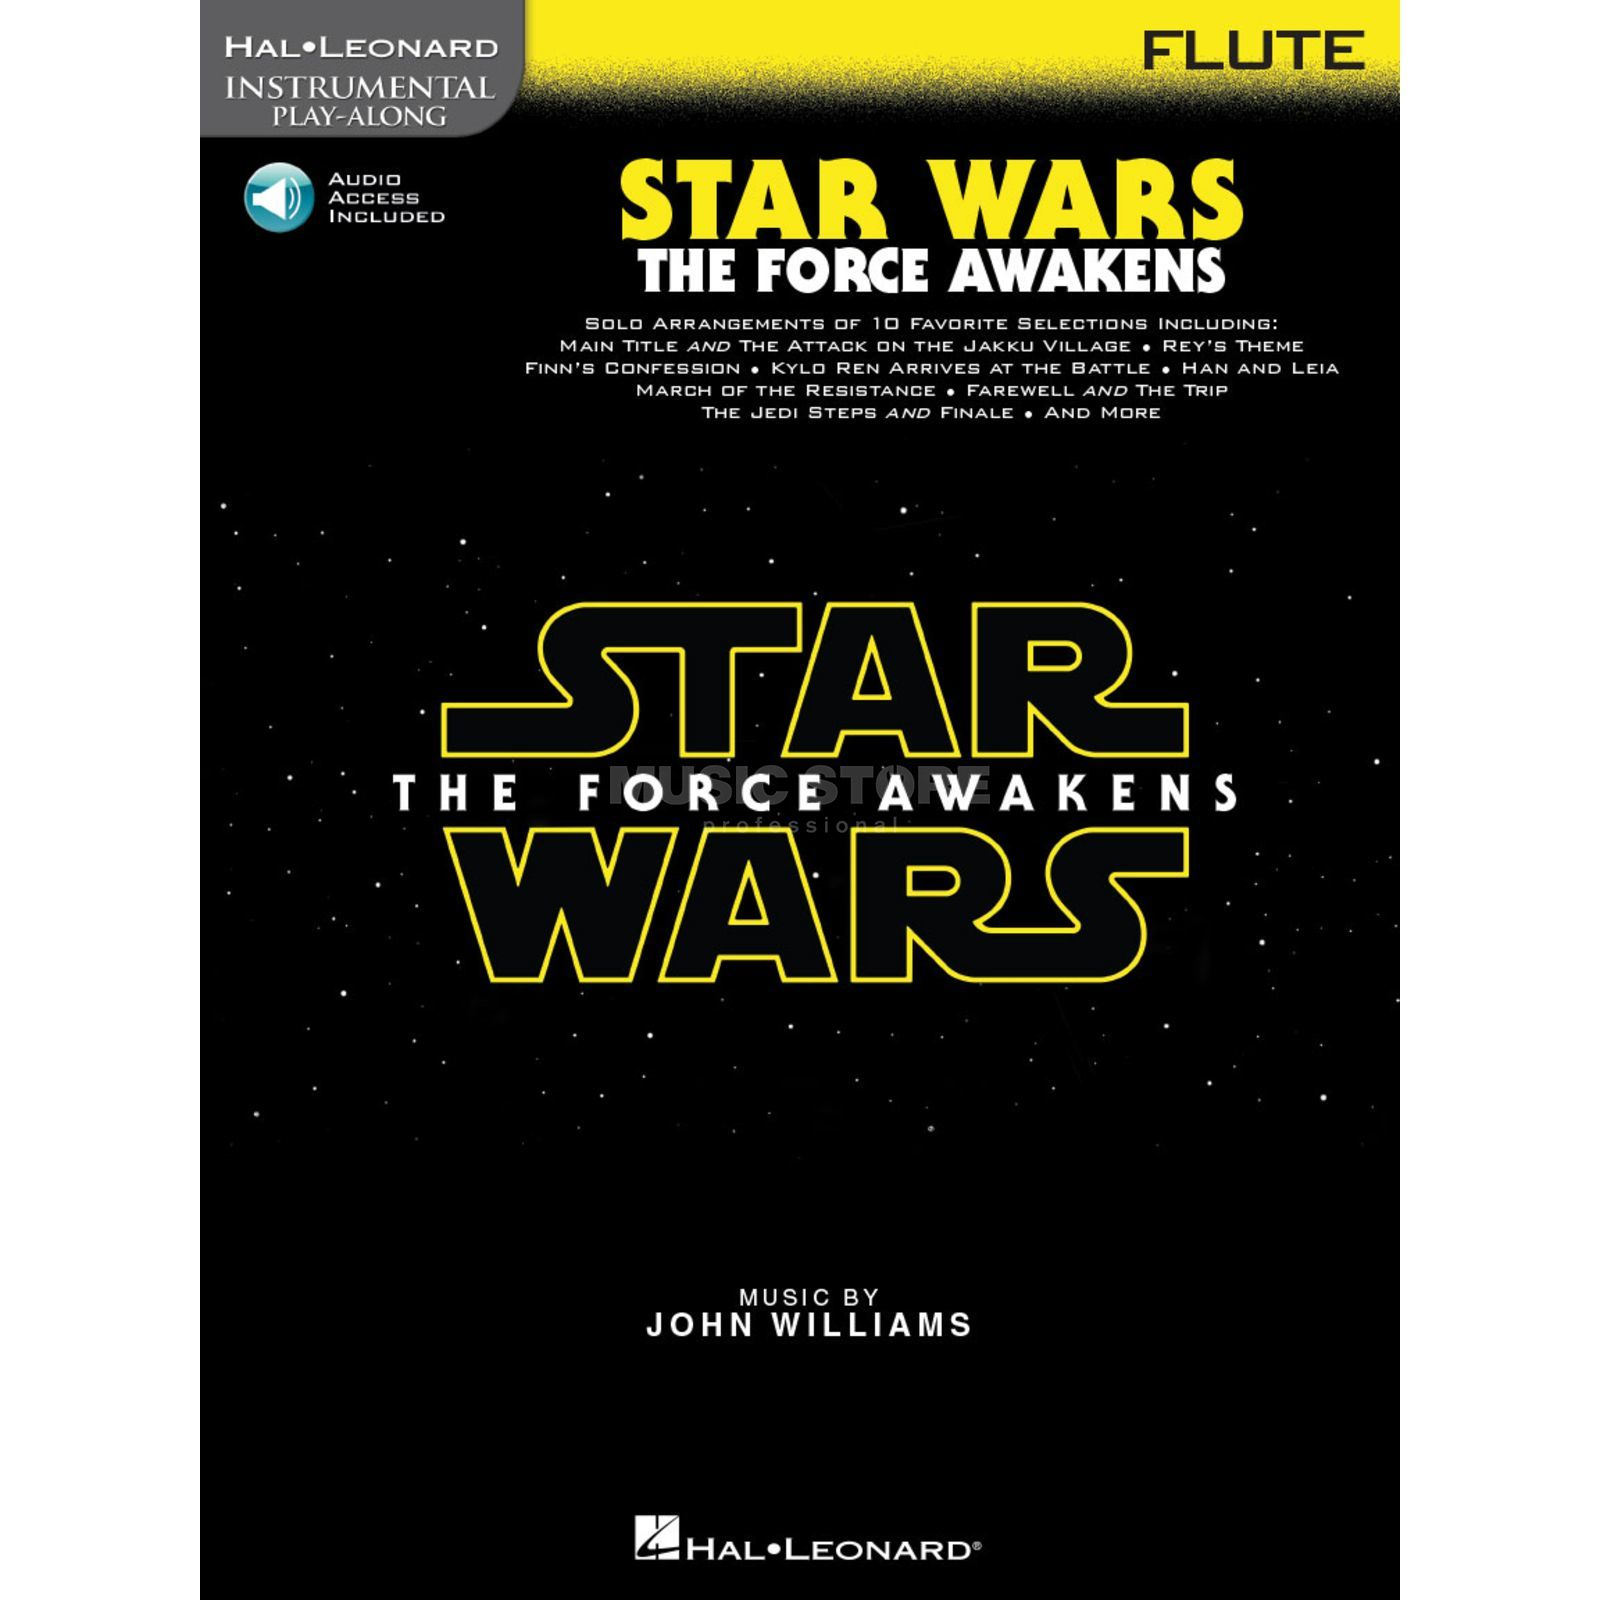 Hal Leonard Instrumental Play-Along: Star Wars - The Force Awakens - Flute Zdjęcie produktu